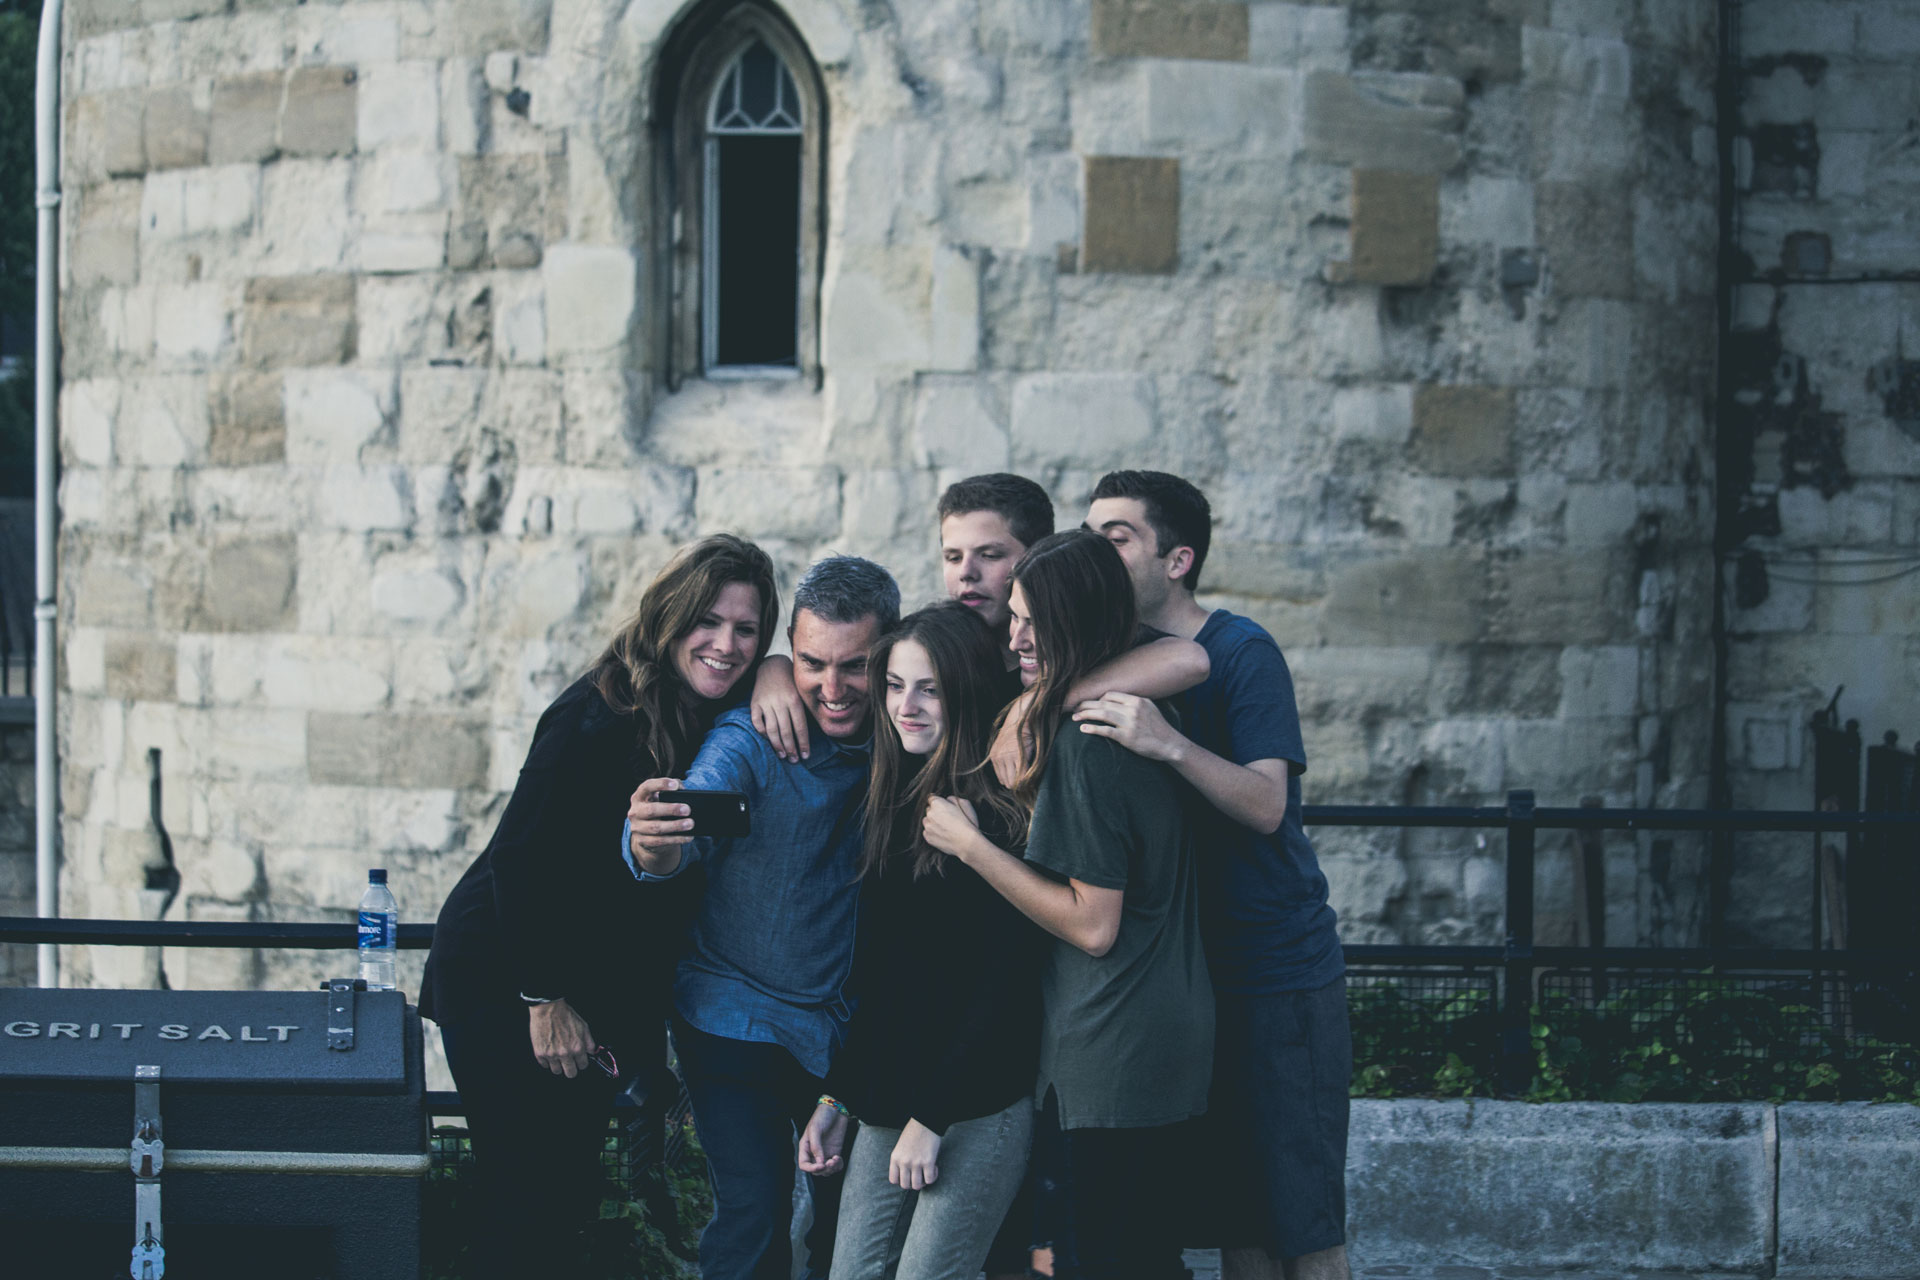 4. MAKE SURE YOU LOVE THE PEOPLE YOU ARE TRAVELING WITH